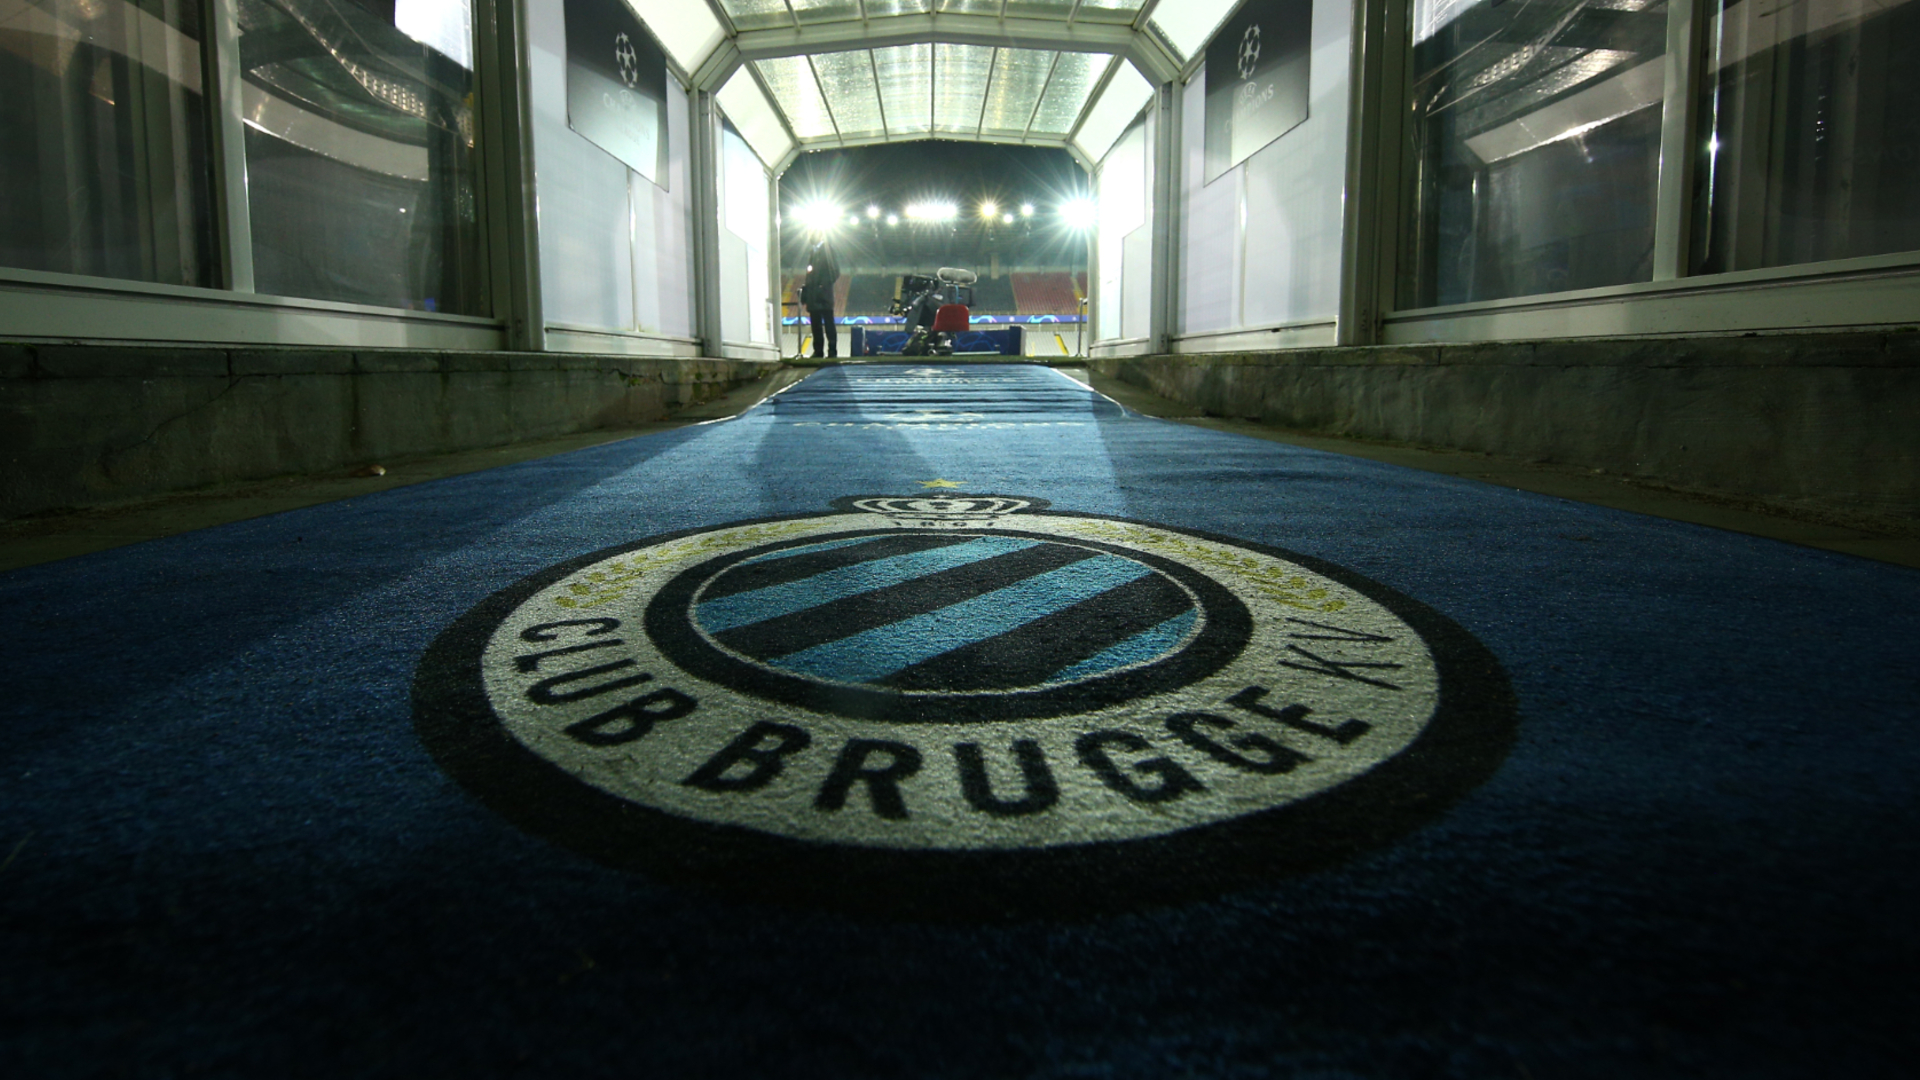 Club Bruges Declared Belgian Champions After Clubs Confirm Season Over